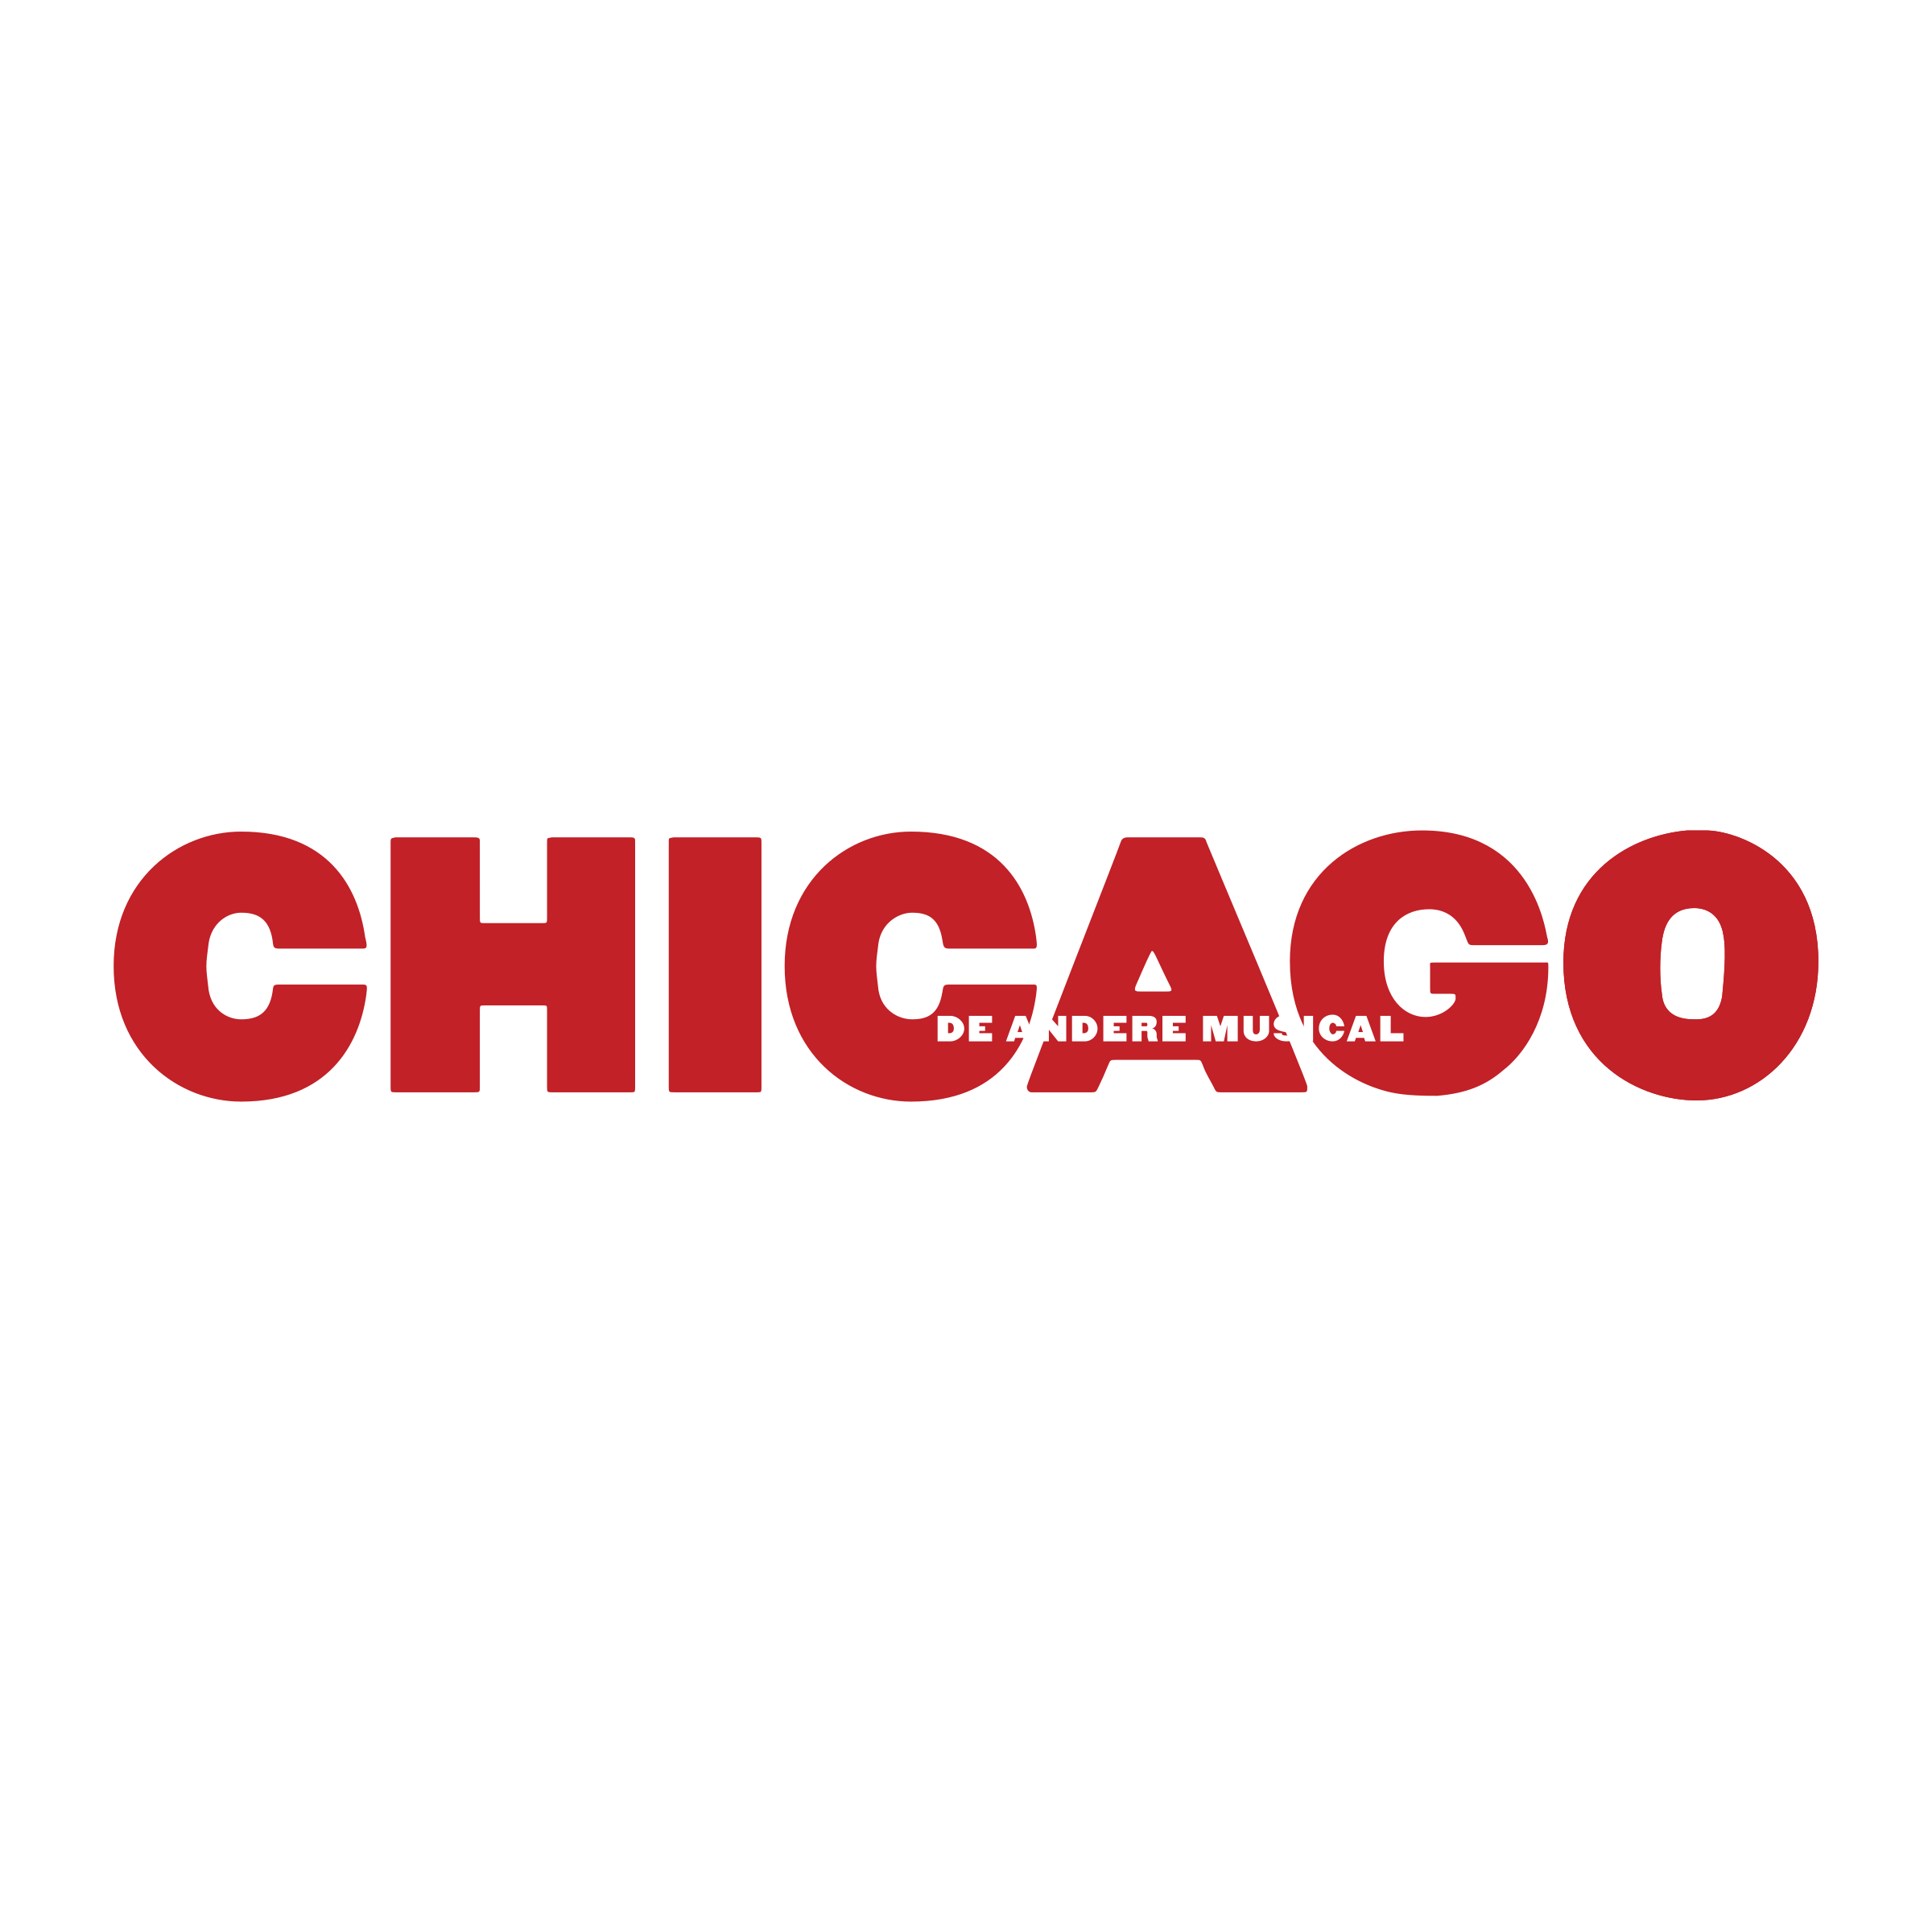 chicago musical png